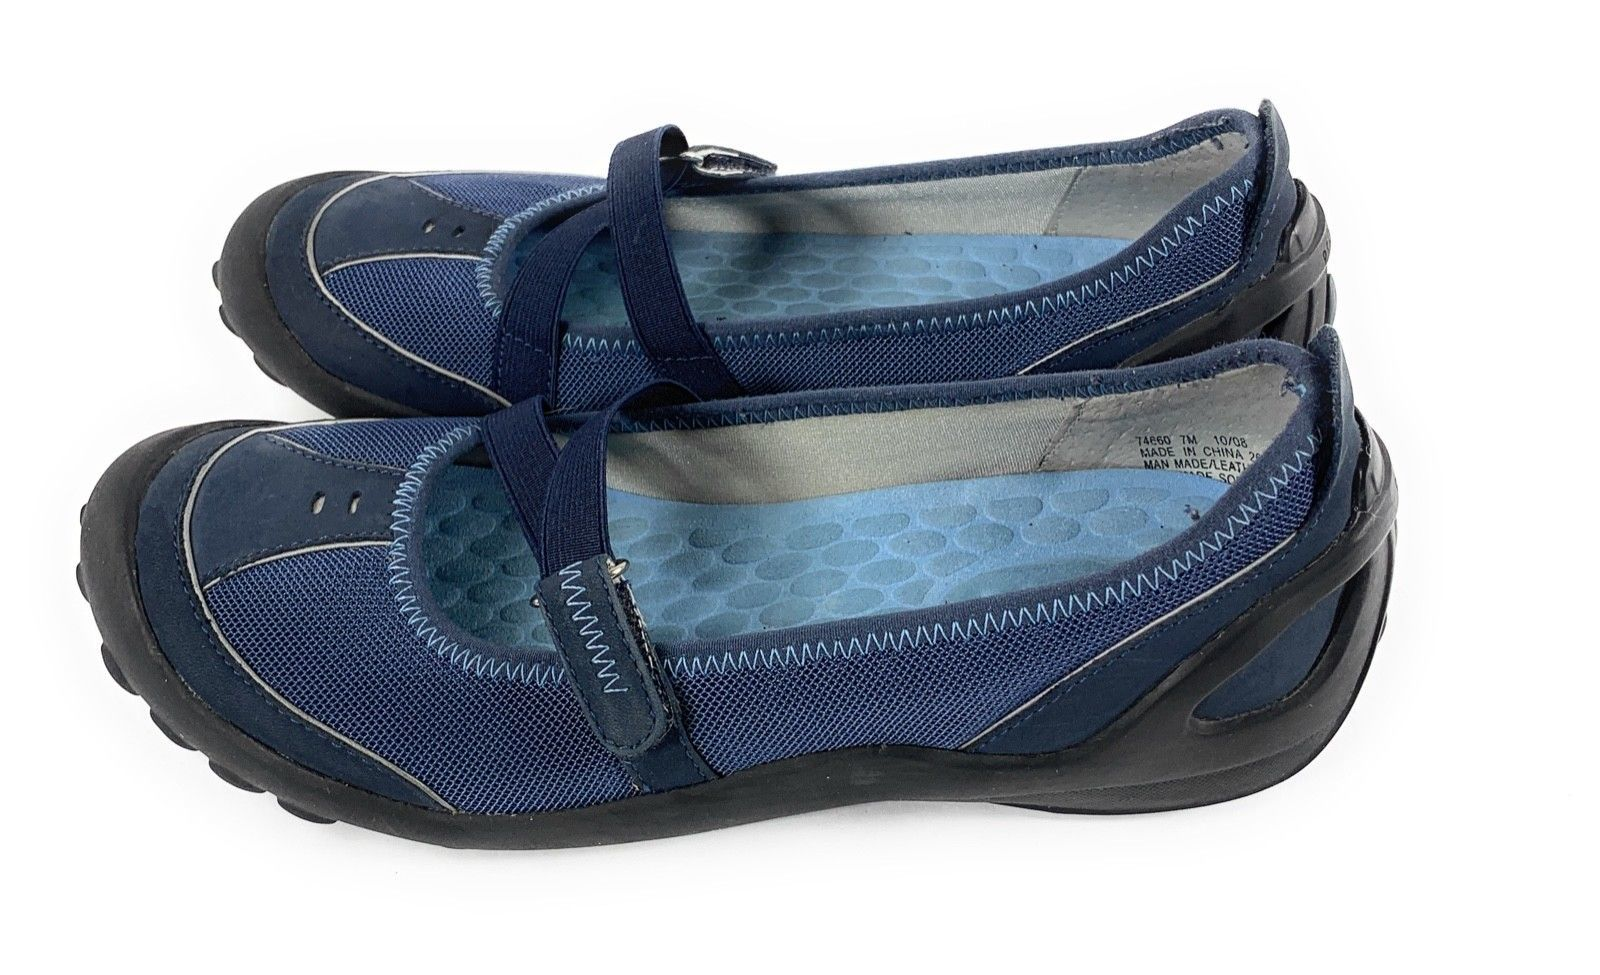 Privo by Clarks 74660 Mary Jane Walking Driving Shoes Navy Blue Women's 7M